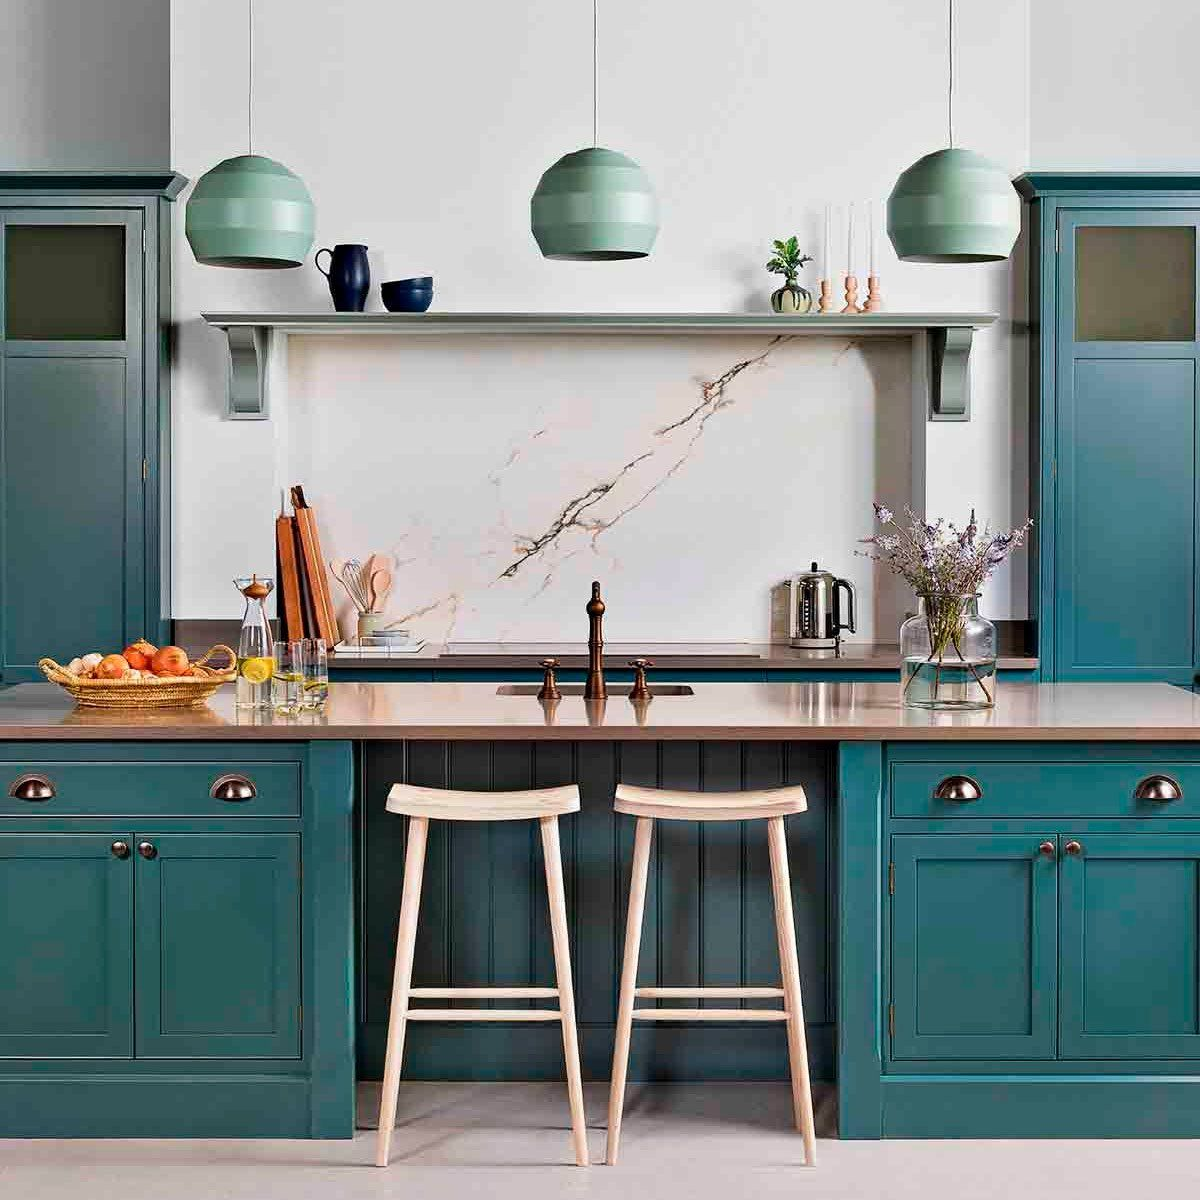 5 Kitchen Trends On Their Way Out In 2019 | Latest kitchen ...